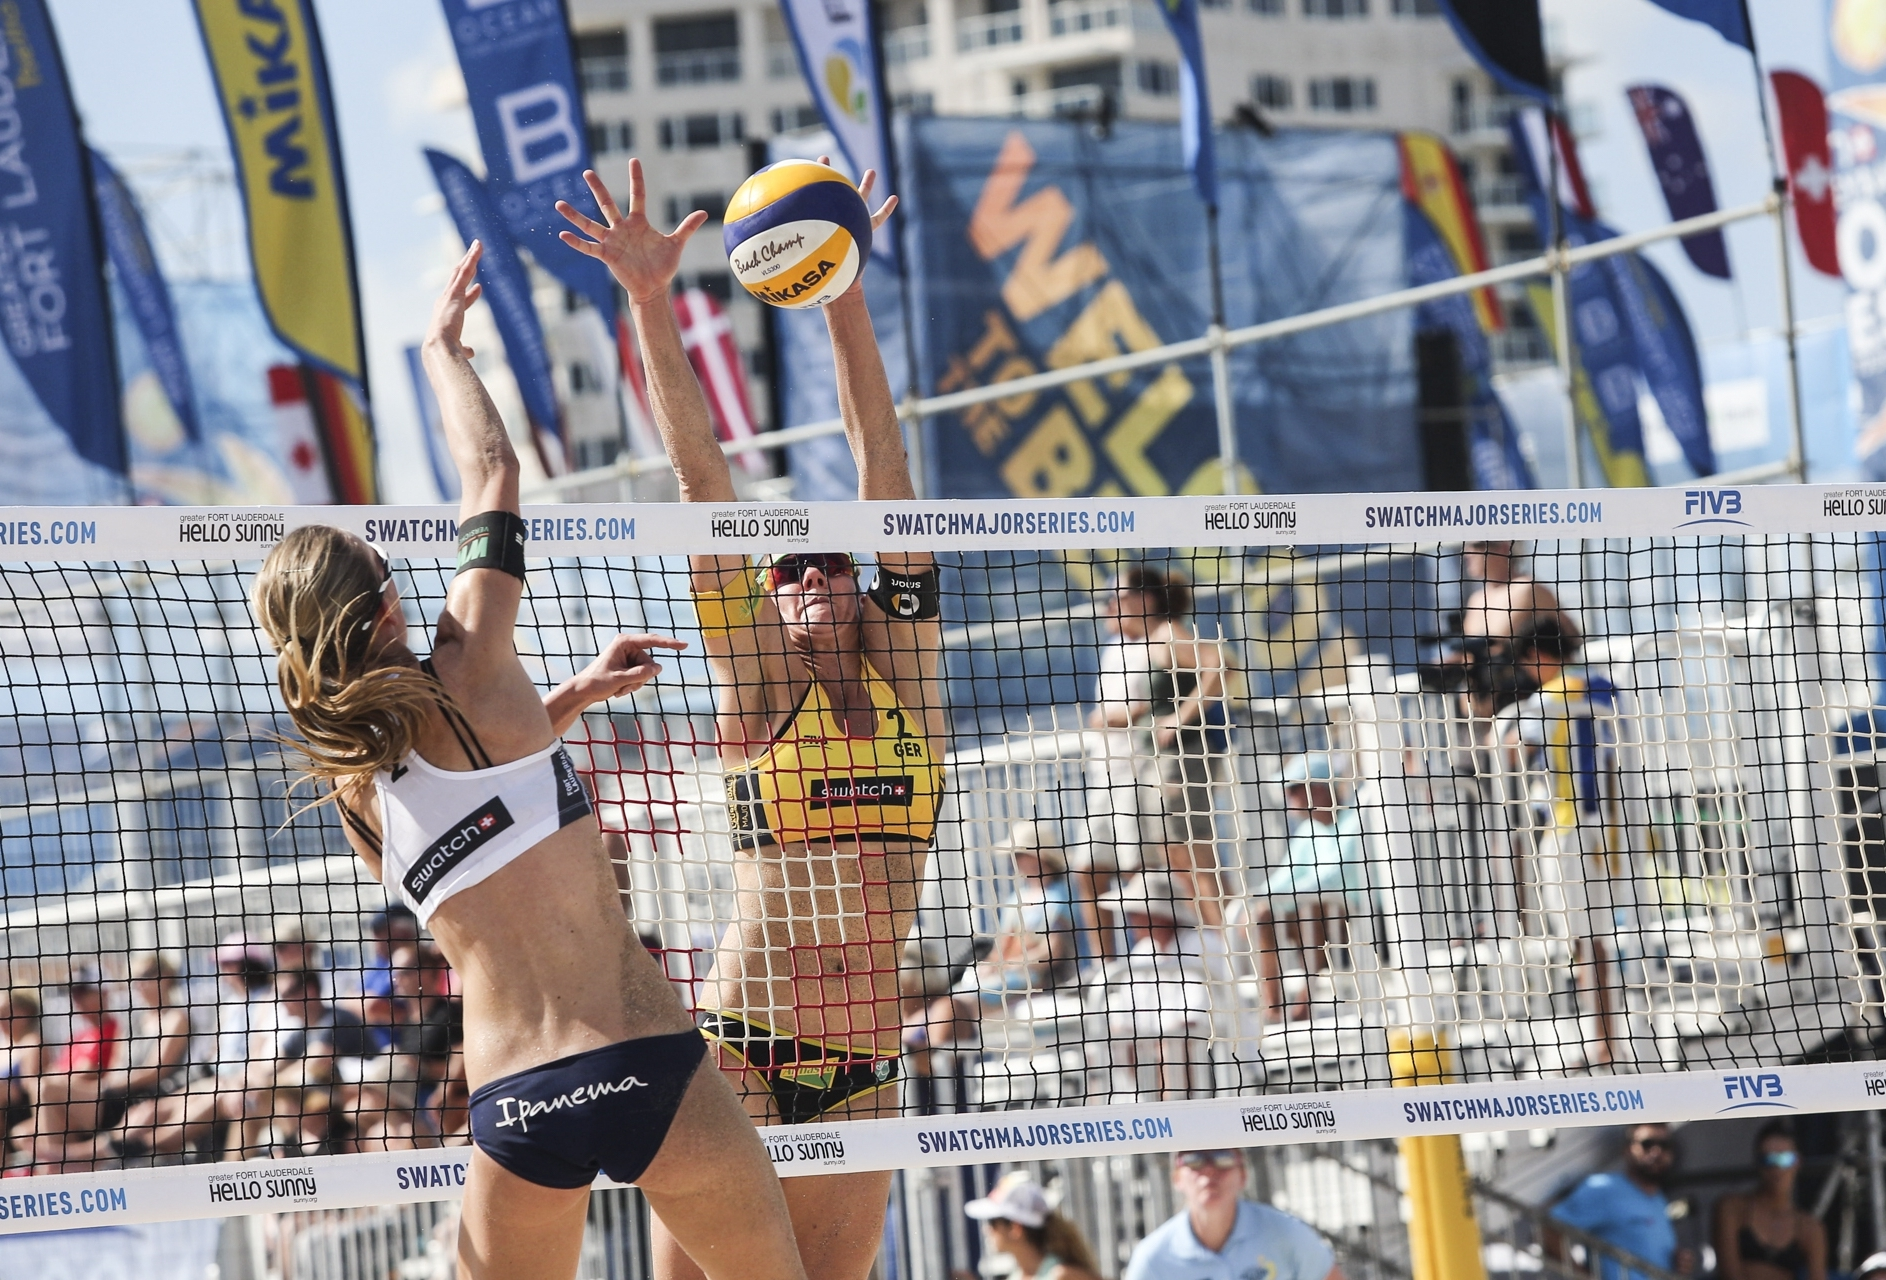 Kira Walkenhorst in action on the first day of the pool play at the #FTLMajor. Photocredit: Martin Steinthaler.